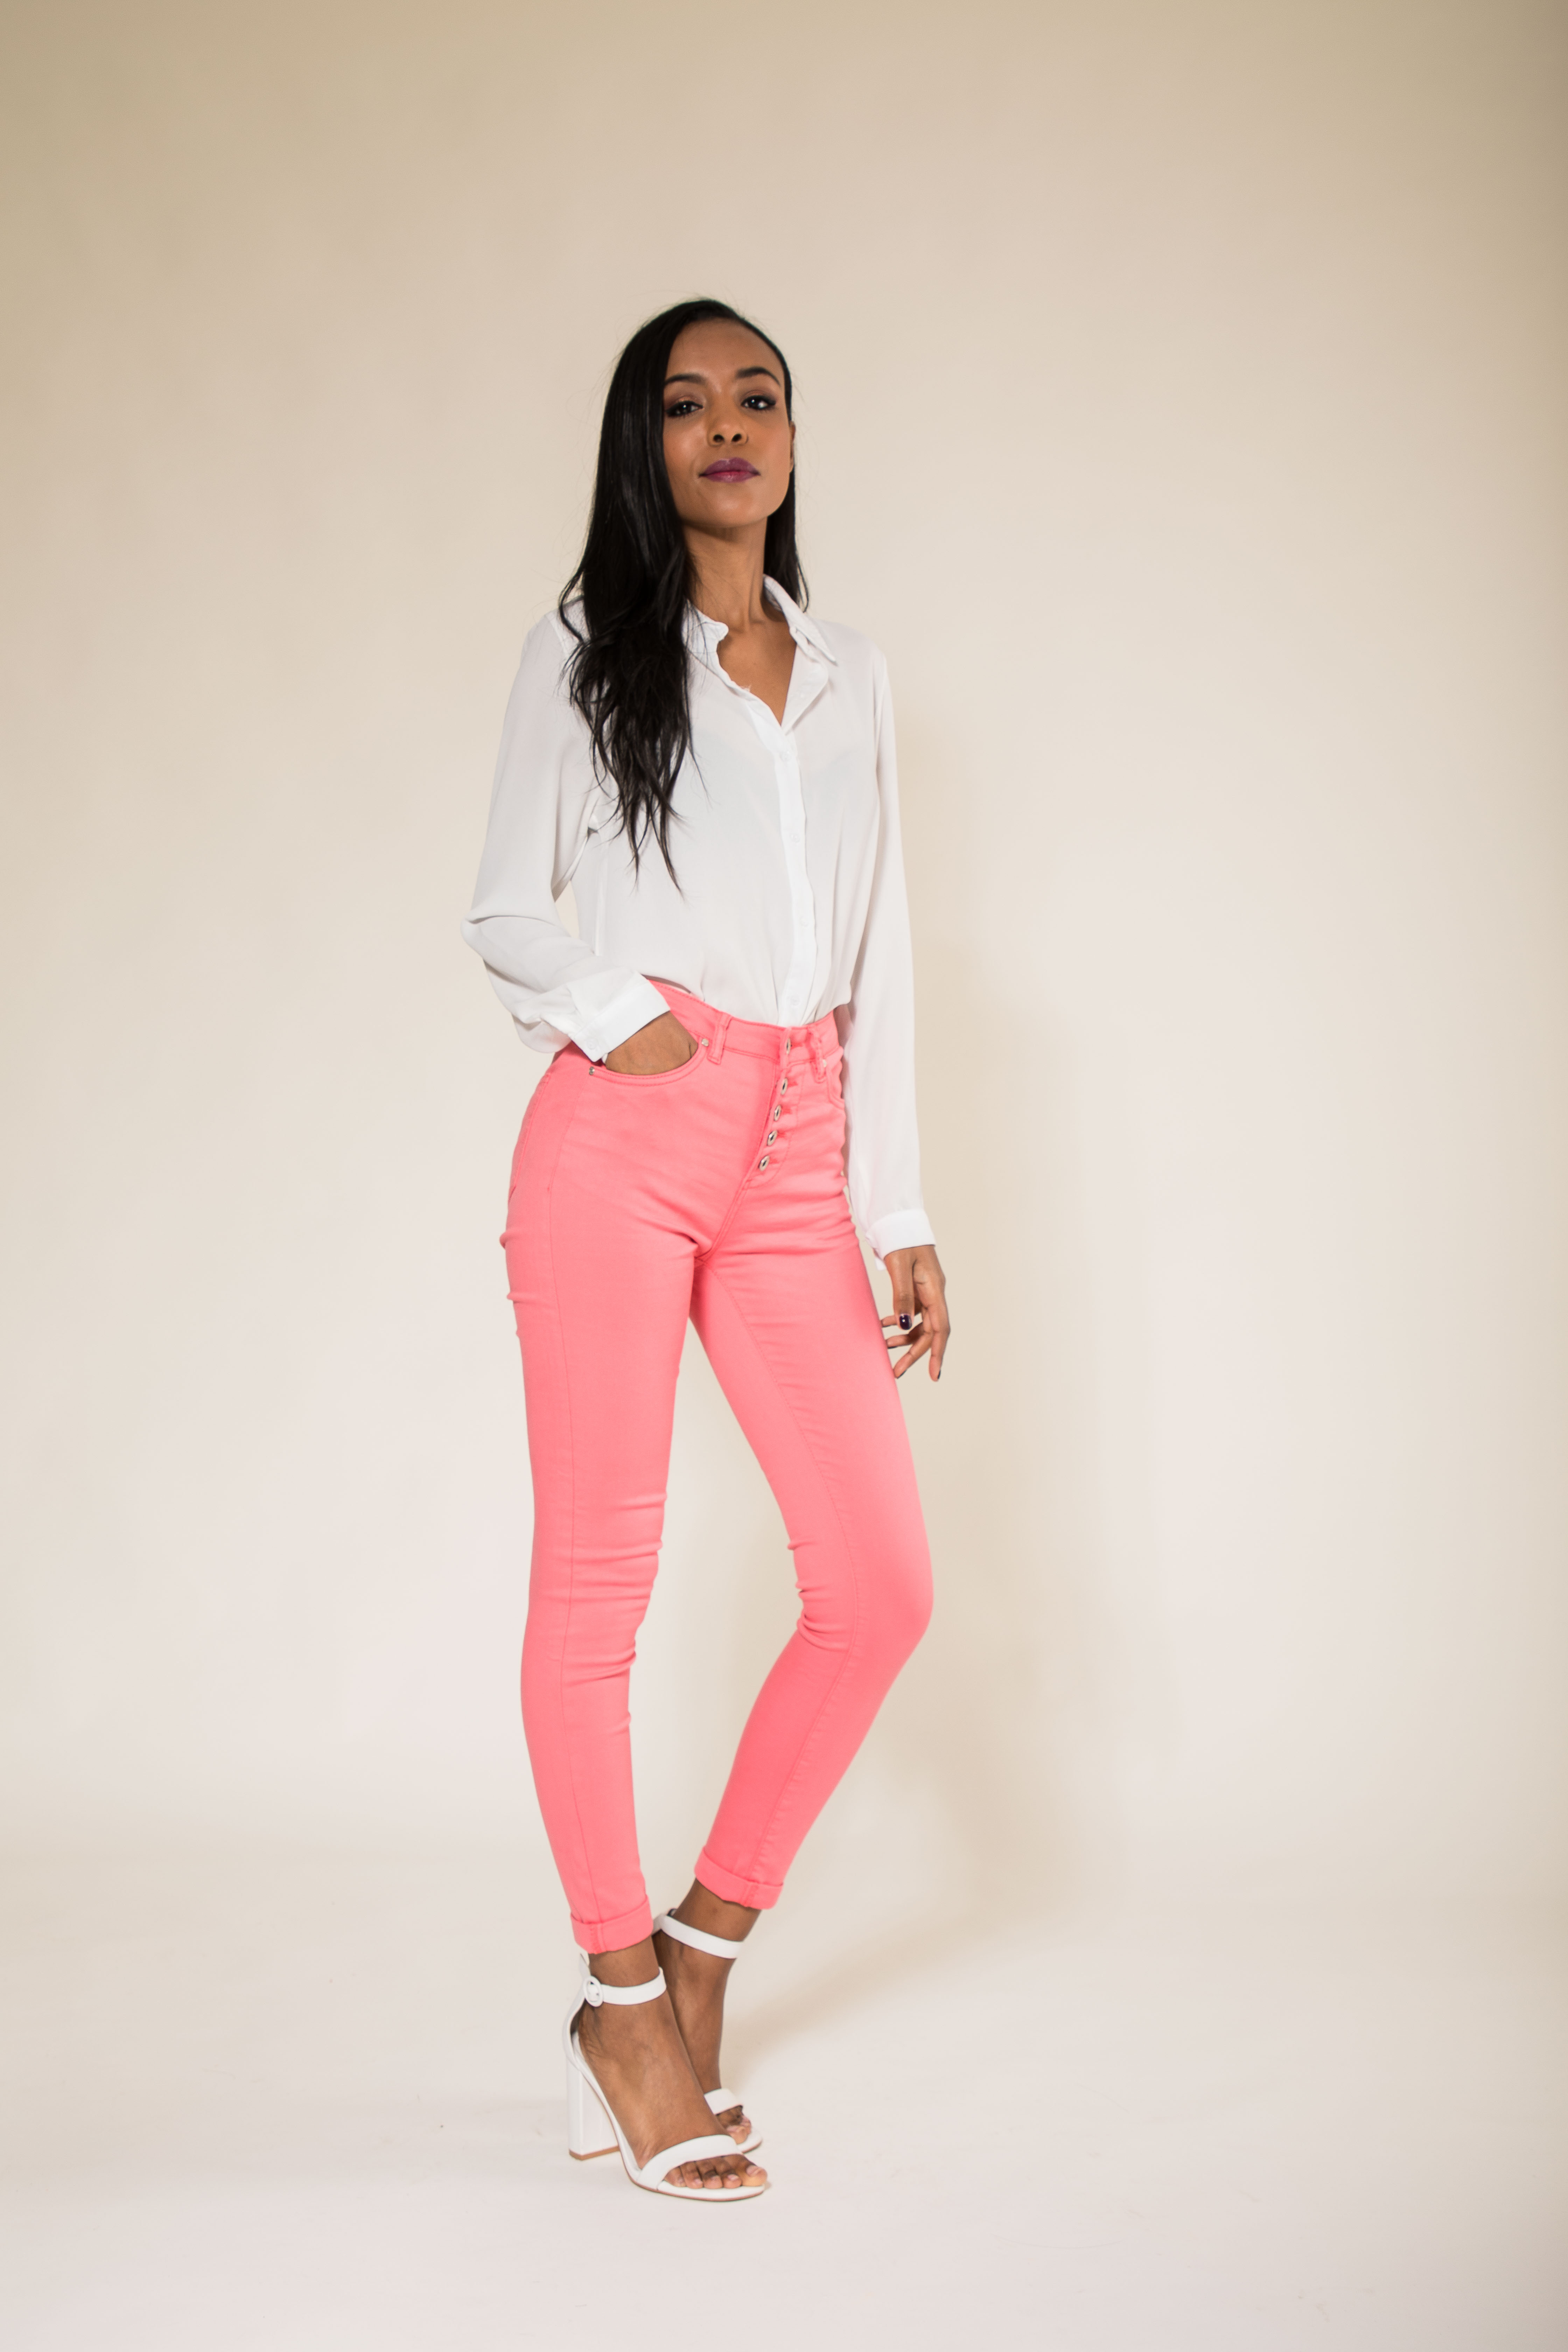 Women-High-Waisted-Jeans-Ladies-Coloured-Stretchy-jeggings-Pants-Size-6-14 thumbnail 26